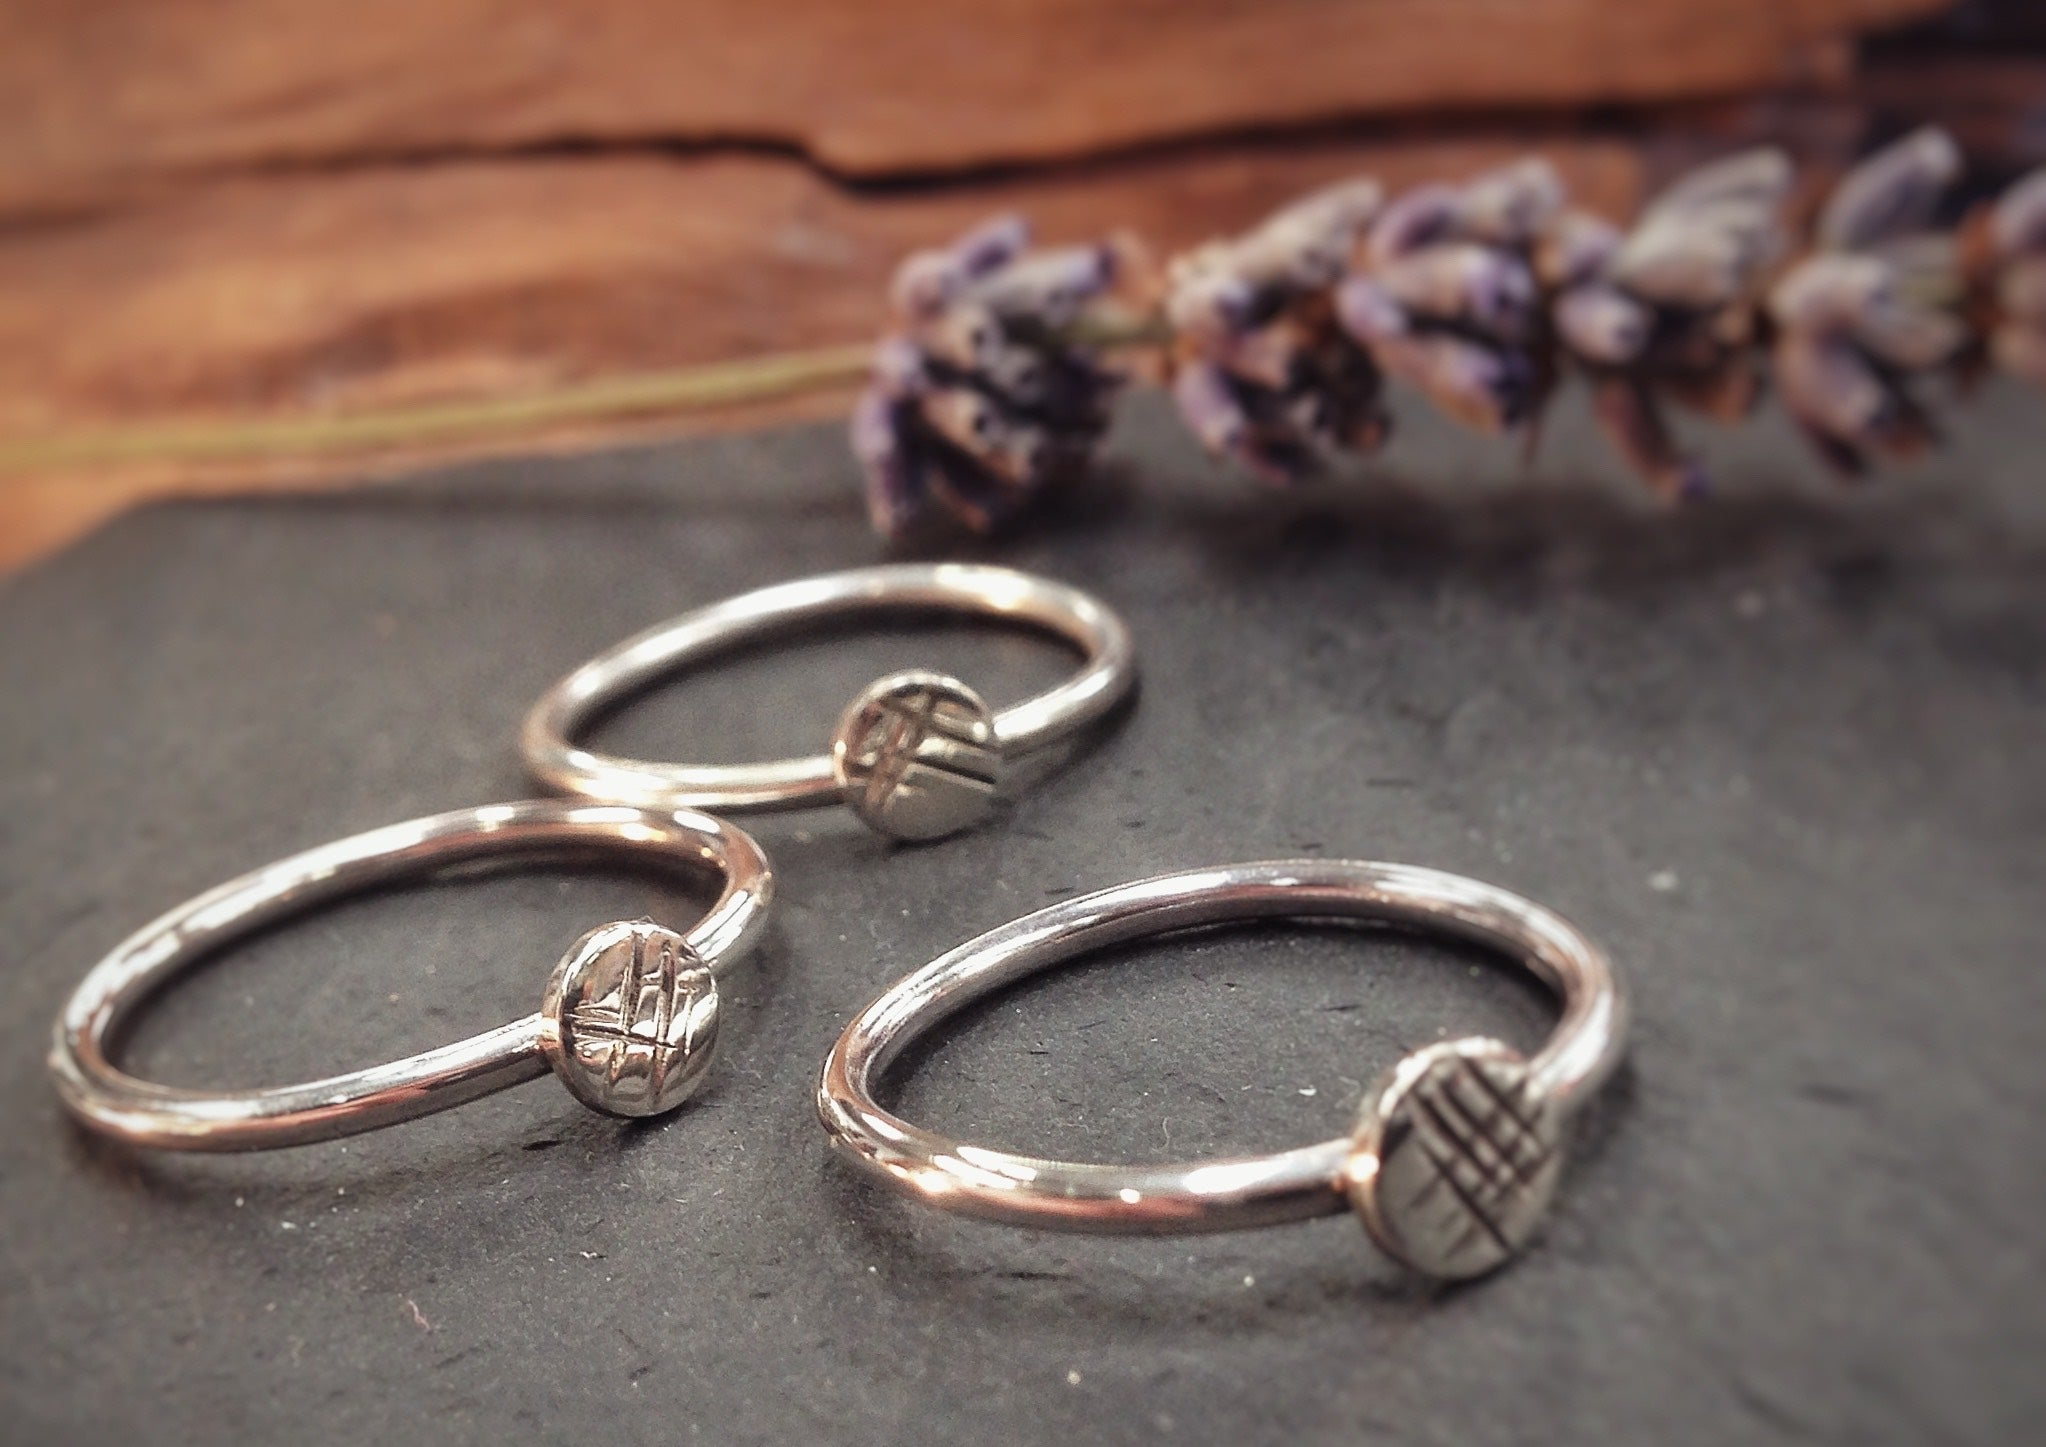 3 silver skinny rings, stackable rings